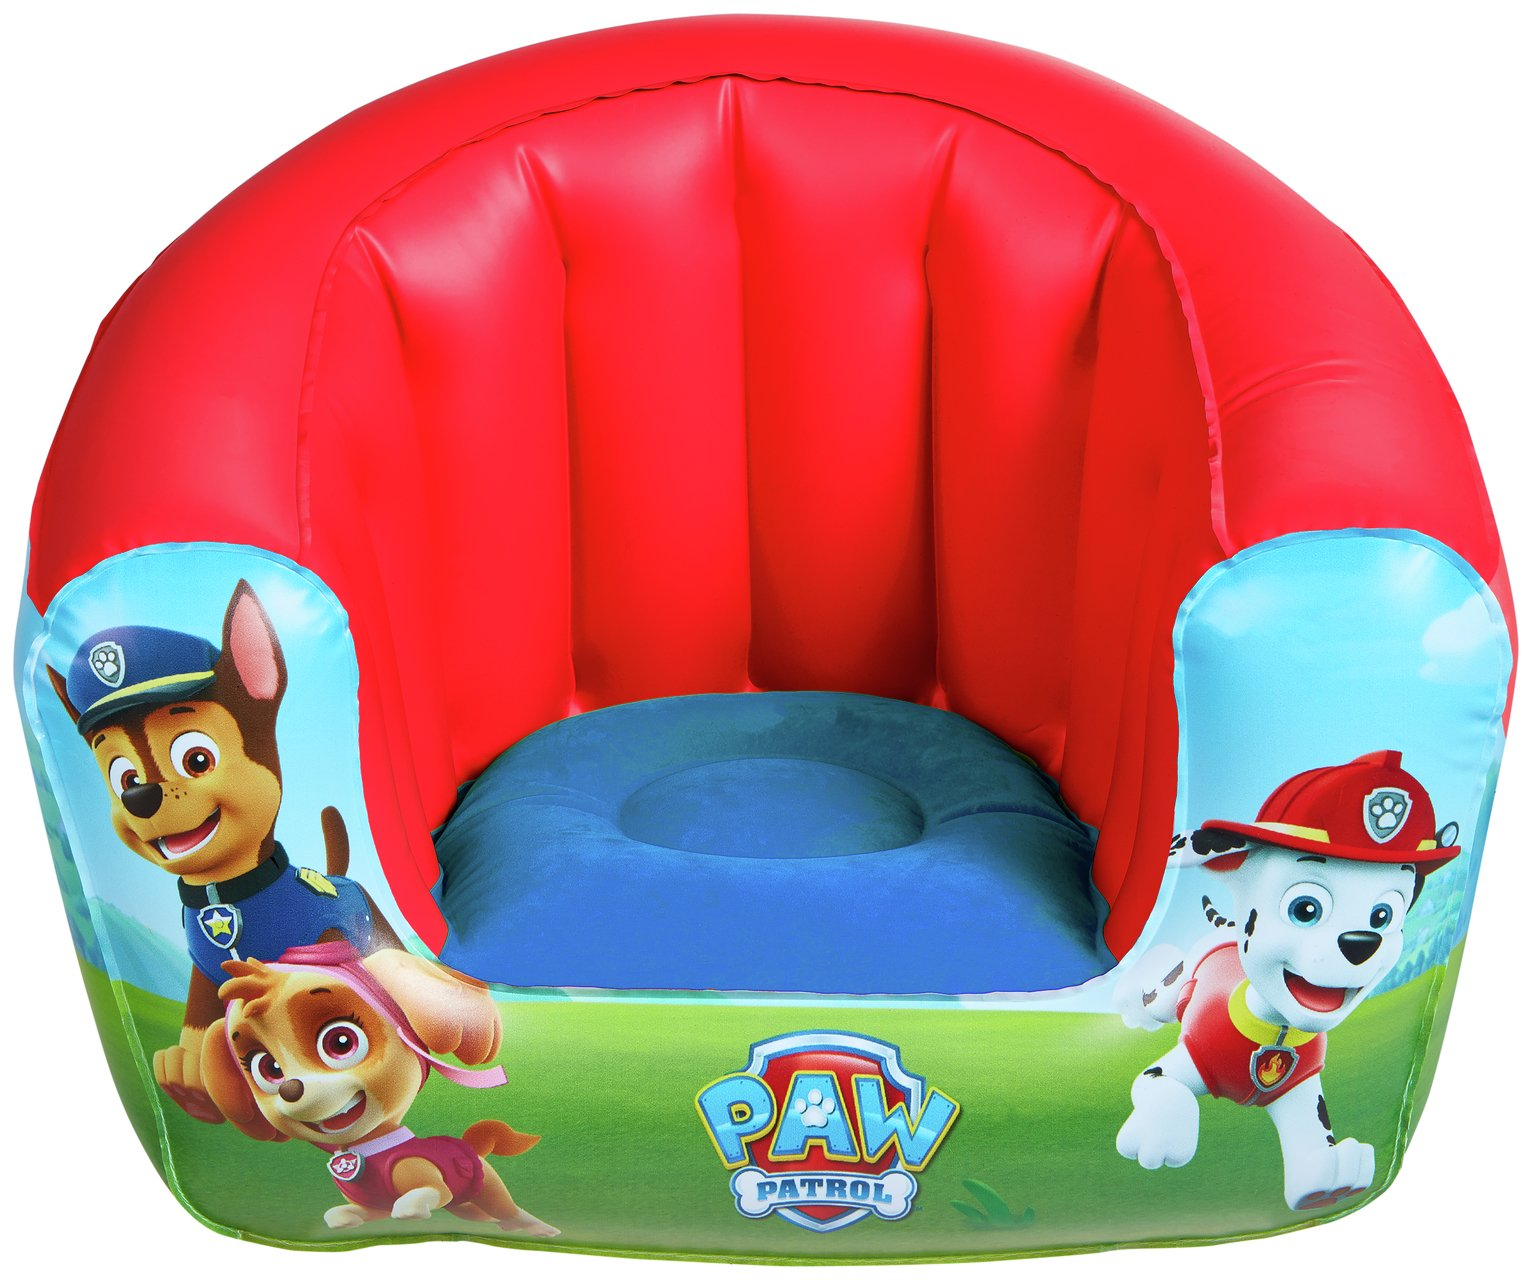 PAW Patrol Flocked Chair from Paw patrol